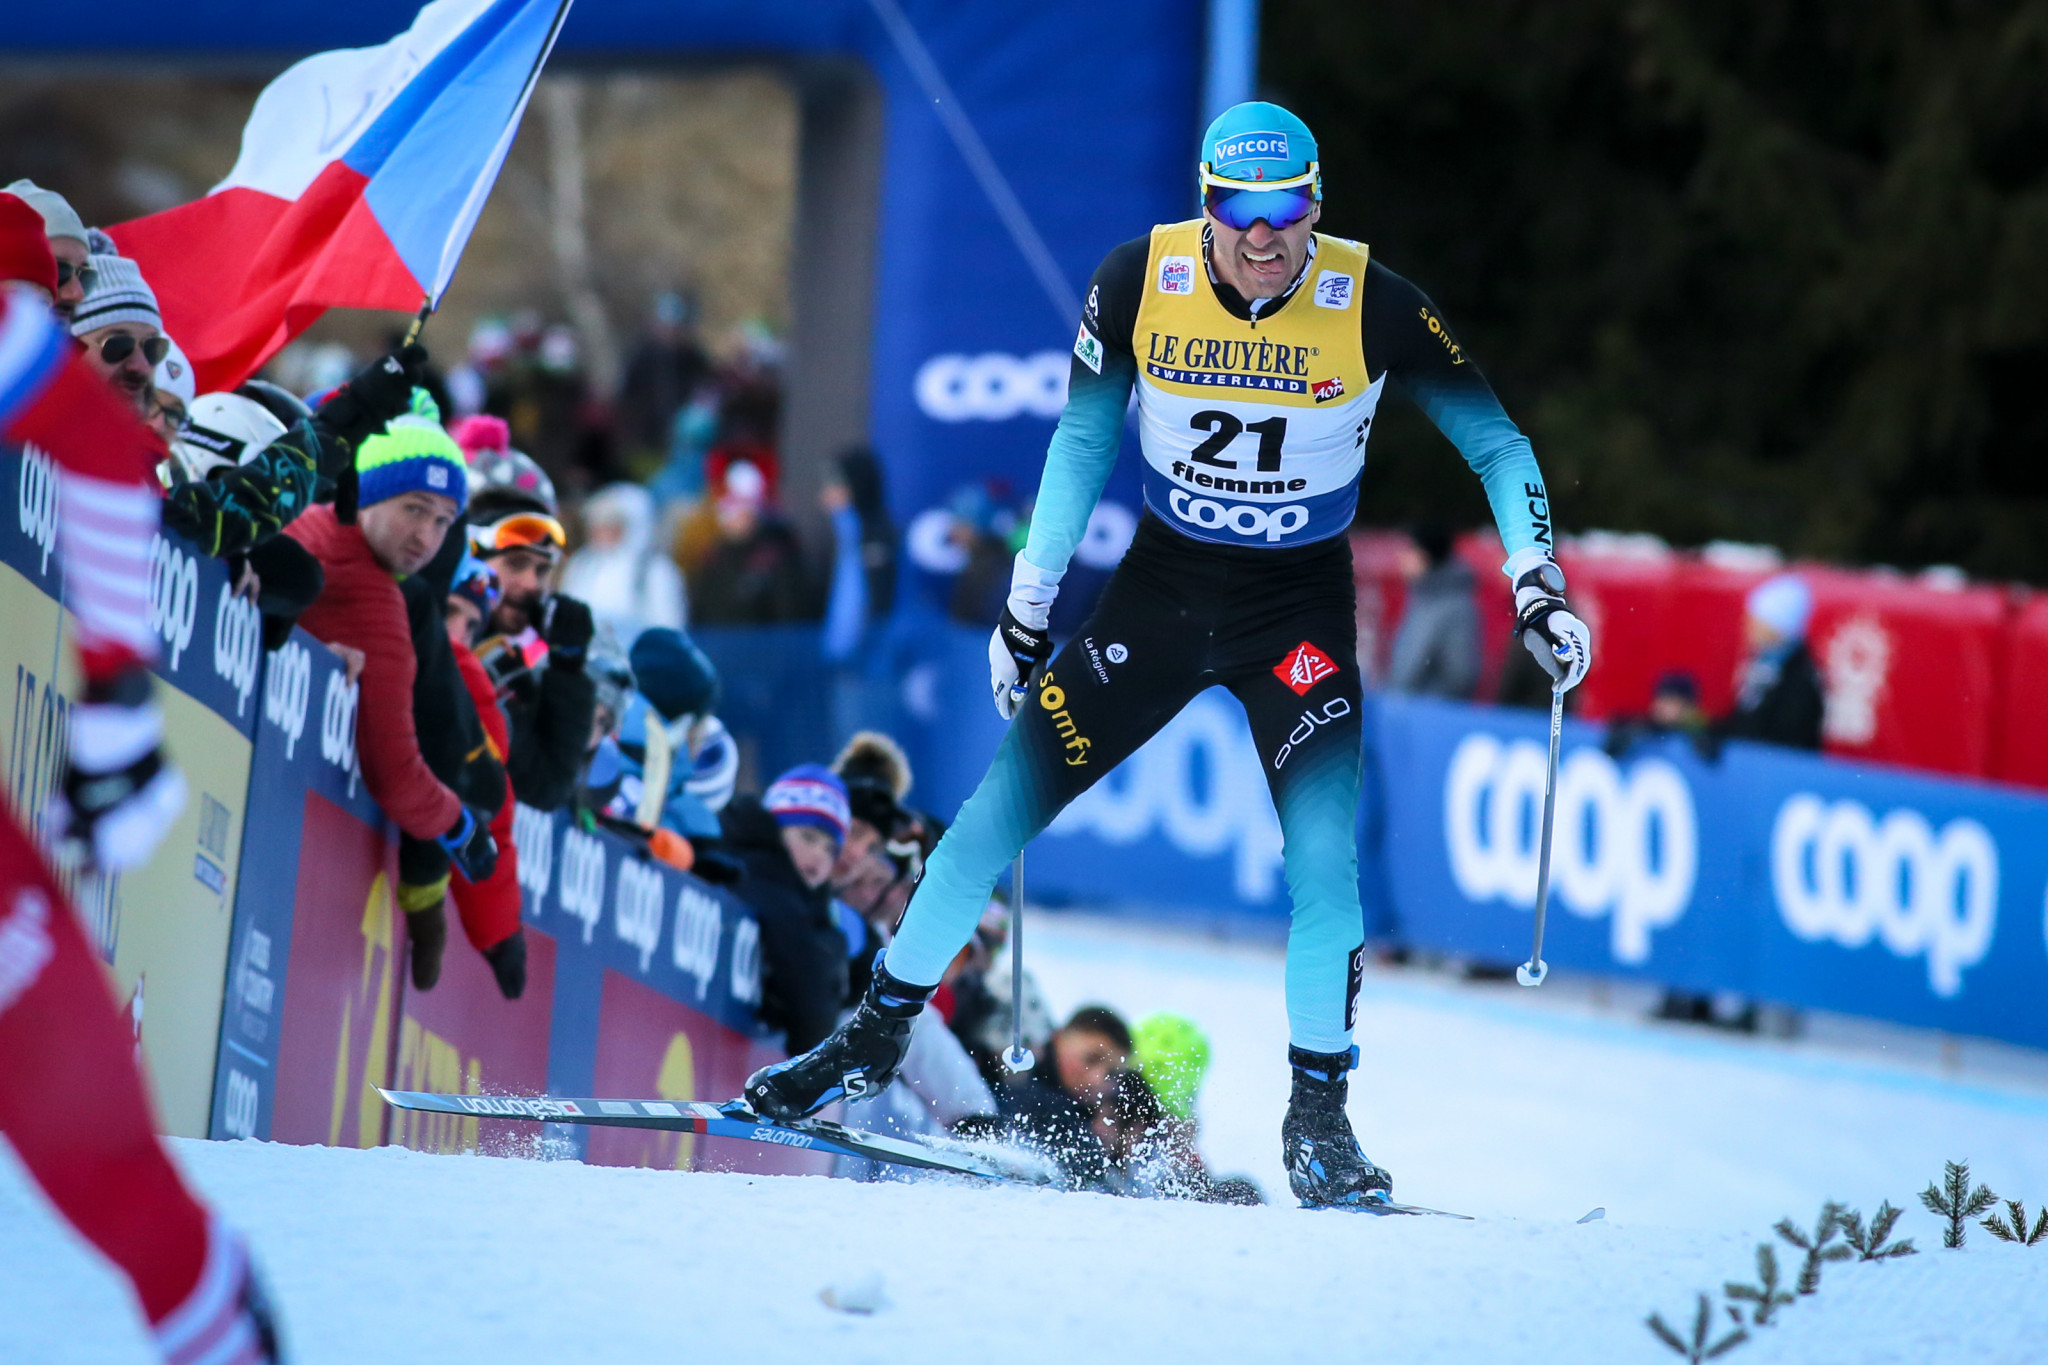 France's Maurice Manificat won the men's race in Ulricehamn to claim only his second medal of the season ©Getty Images